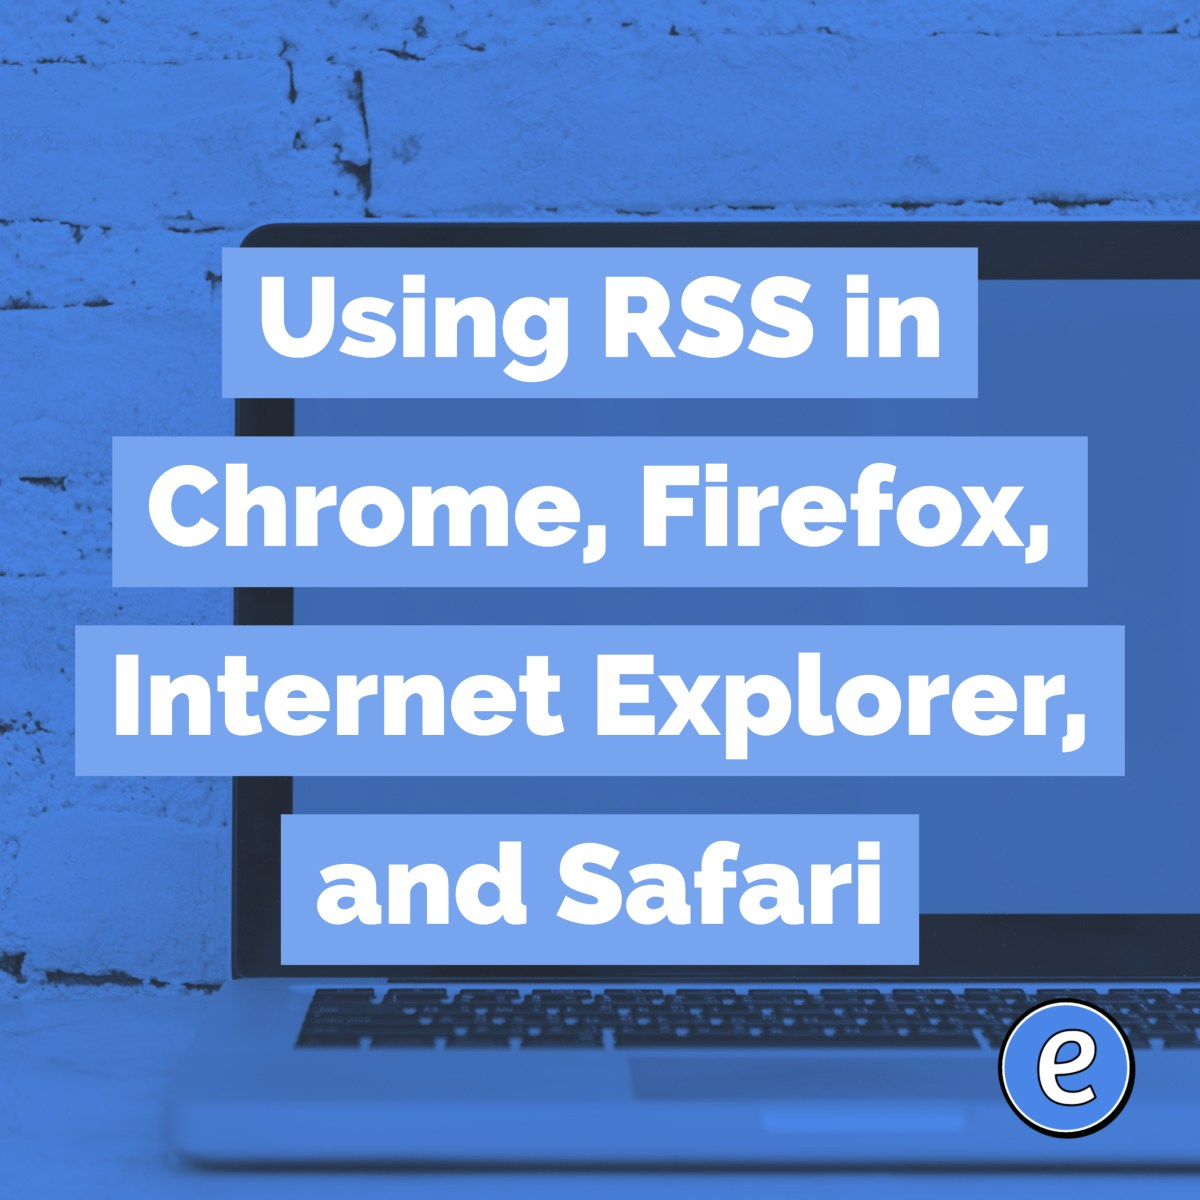 Using RSS in Chrome, Firefox, Internet Explorer, and Safari